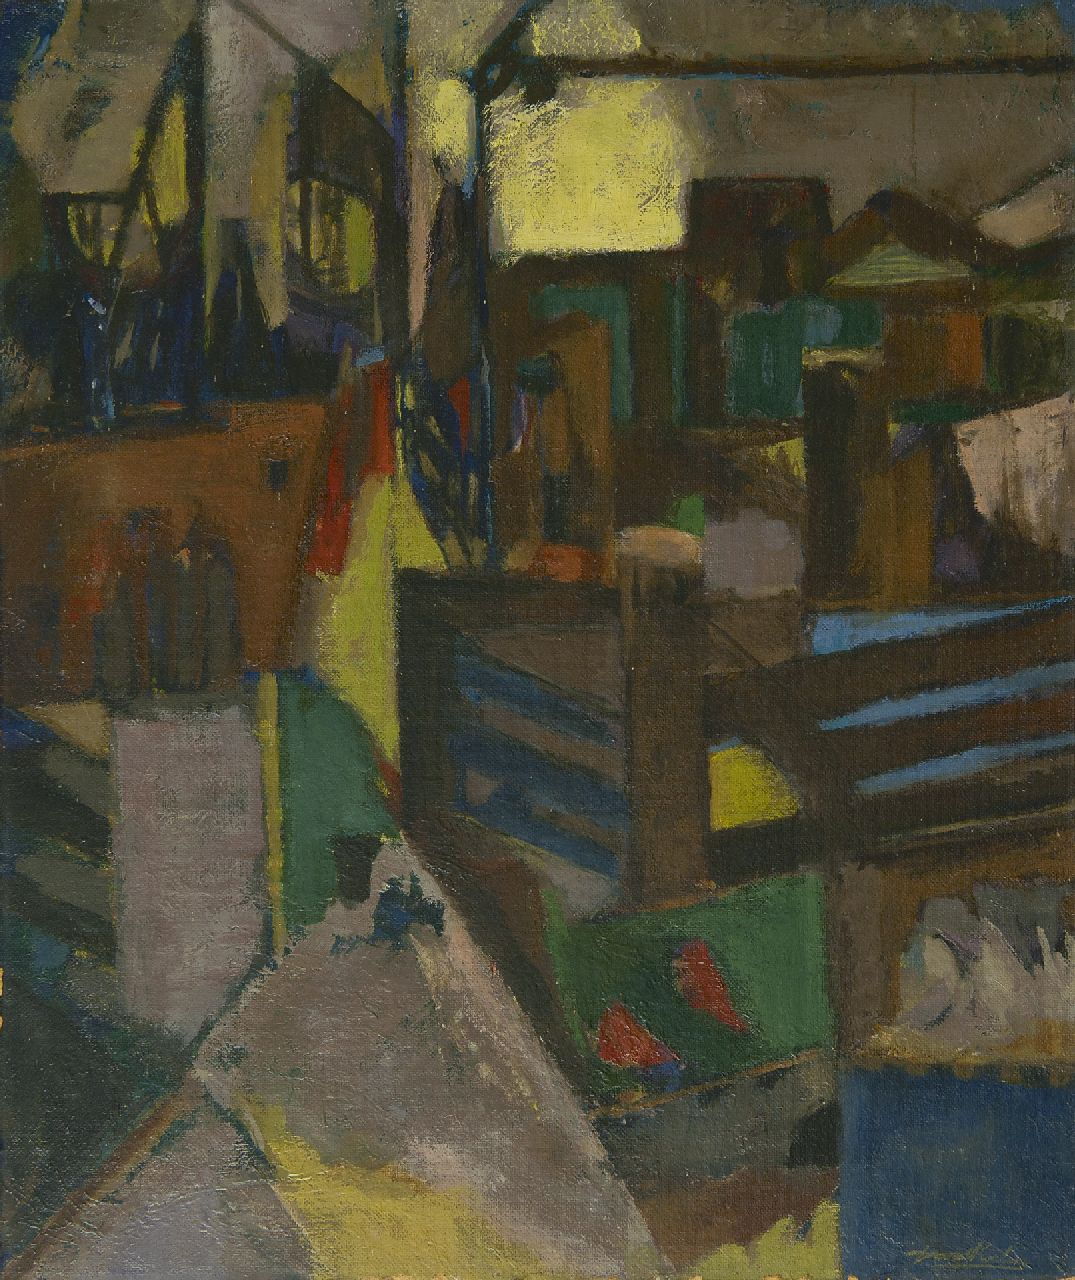 Gerard Koelen | Rooftop view, oil on board, 70.3 x 59.2 cm, signed l.r.